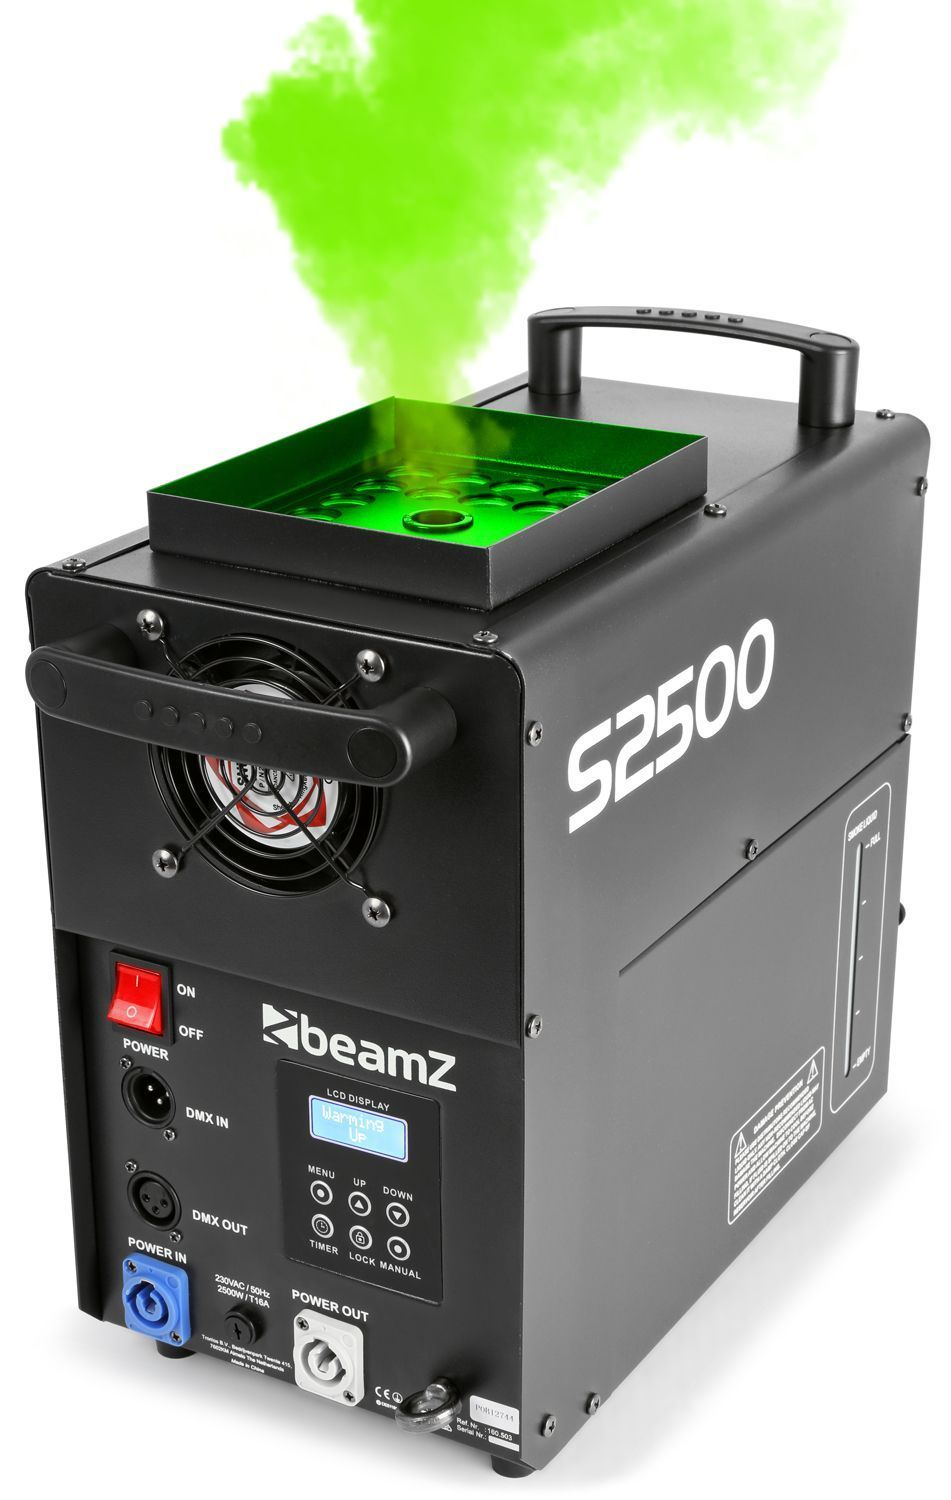 BeamZ S2500 Rookmachine met LED effect 24x10W leds